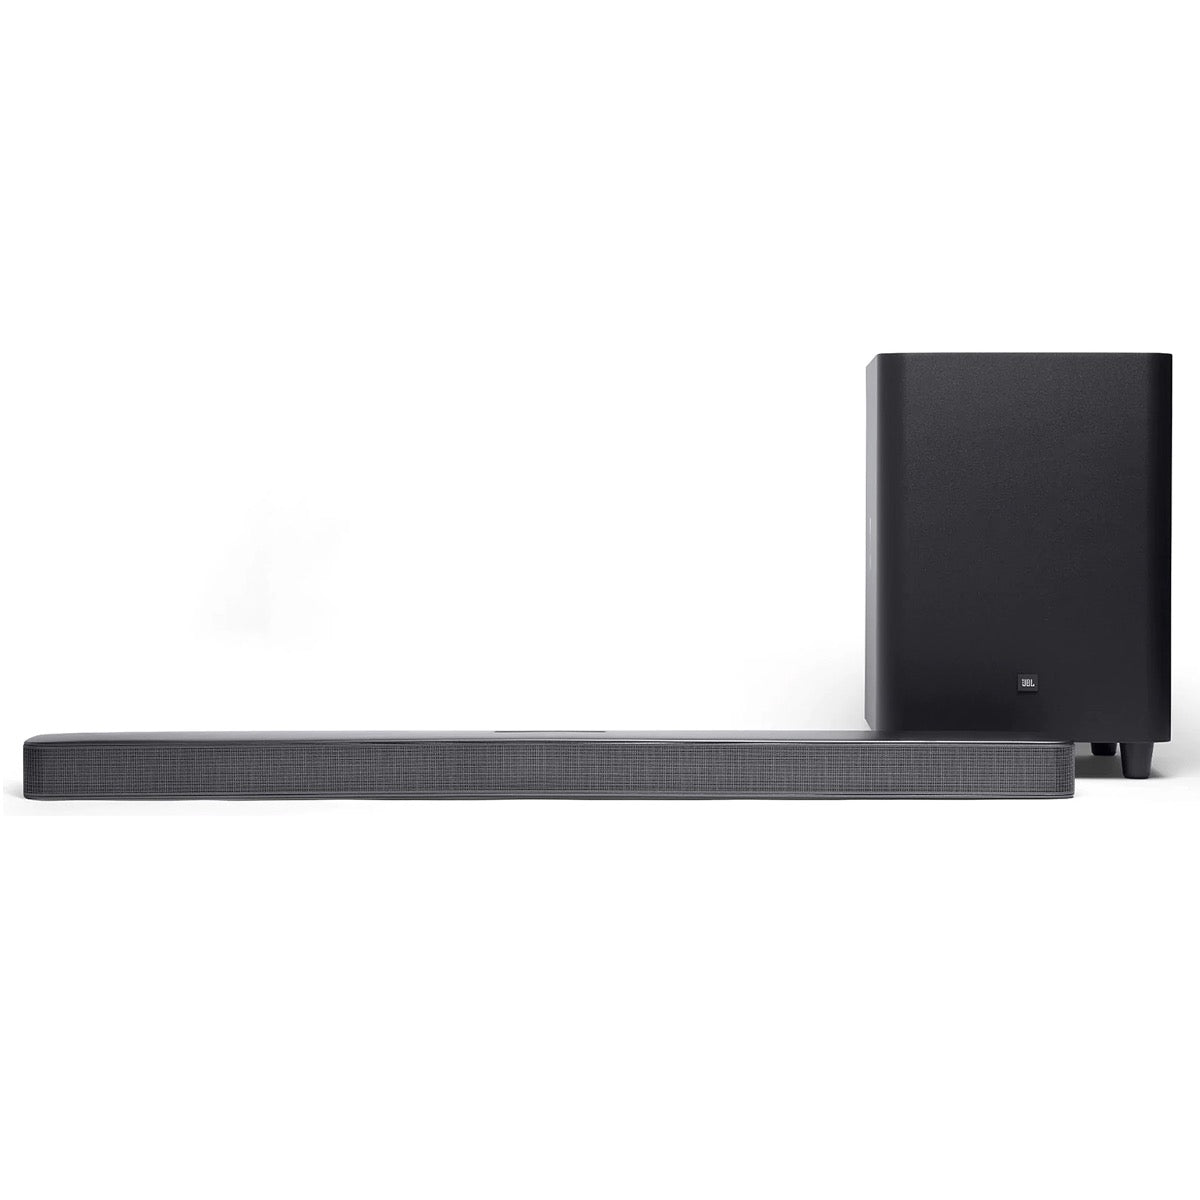 JBL Bar 5.1 Surround - Soundbar and Subwoofer, JBL, Soundbar - AVStore.in